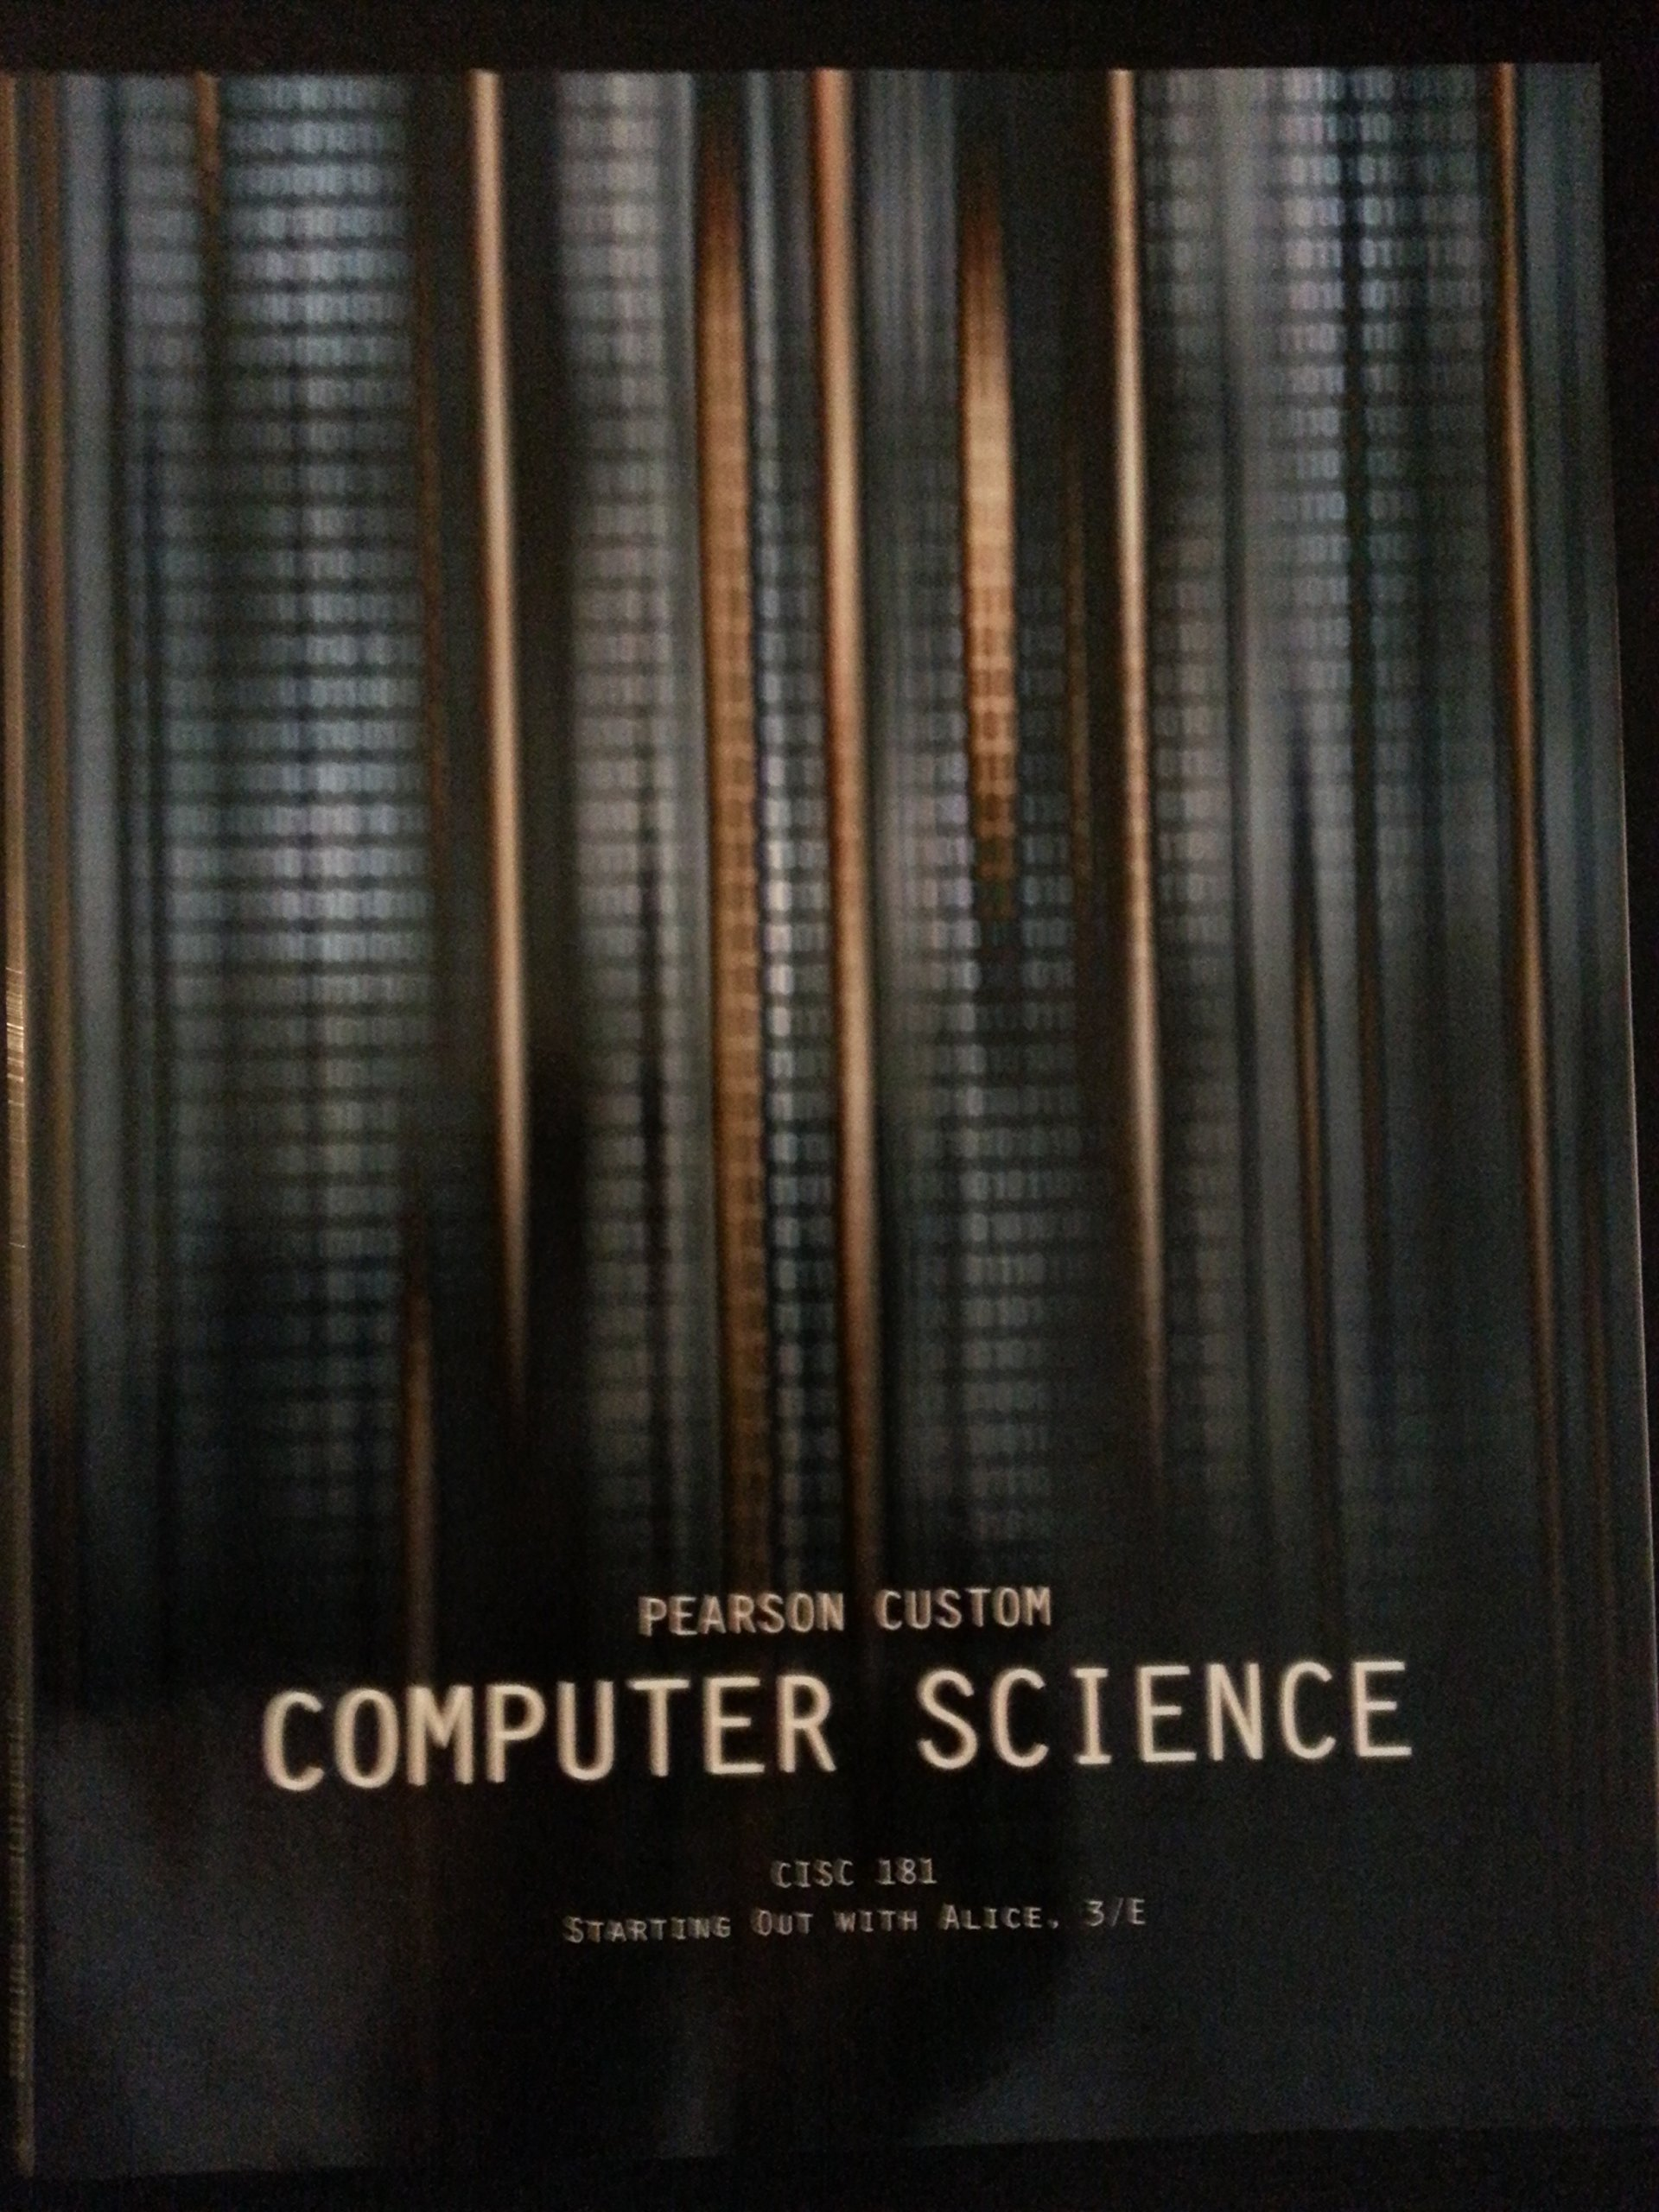 Pearson Custom COMPUTER SCIENCE - Starting Out With ALICE, 3/E PDF